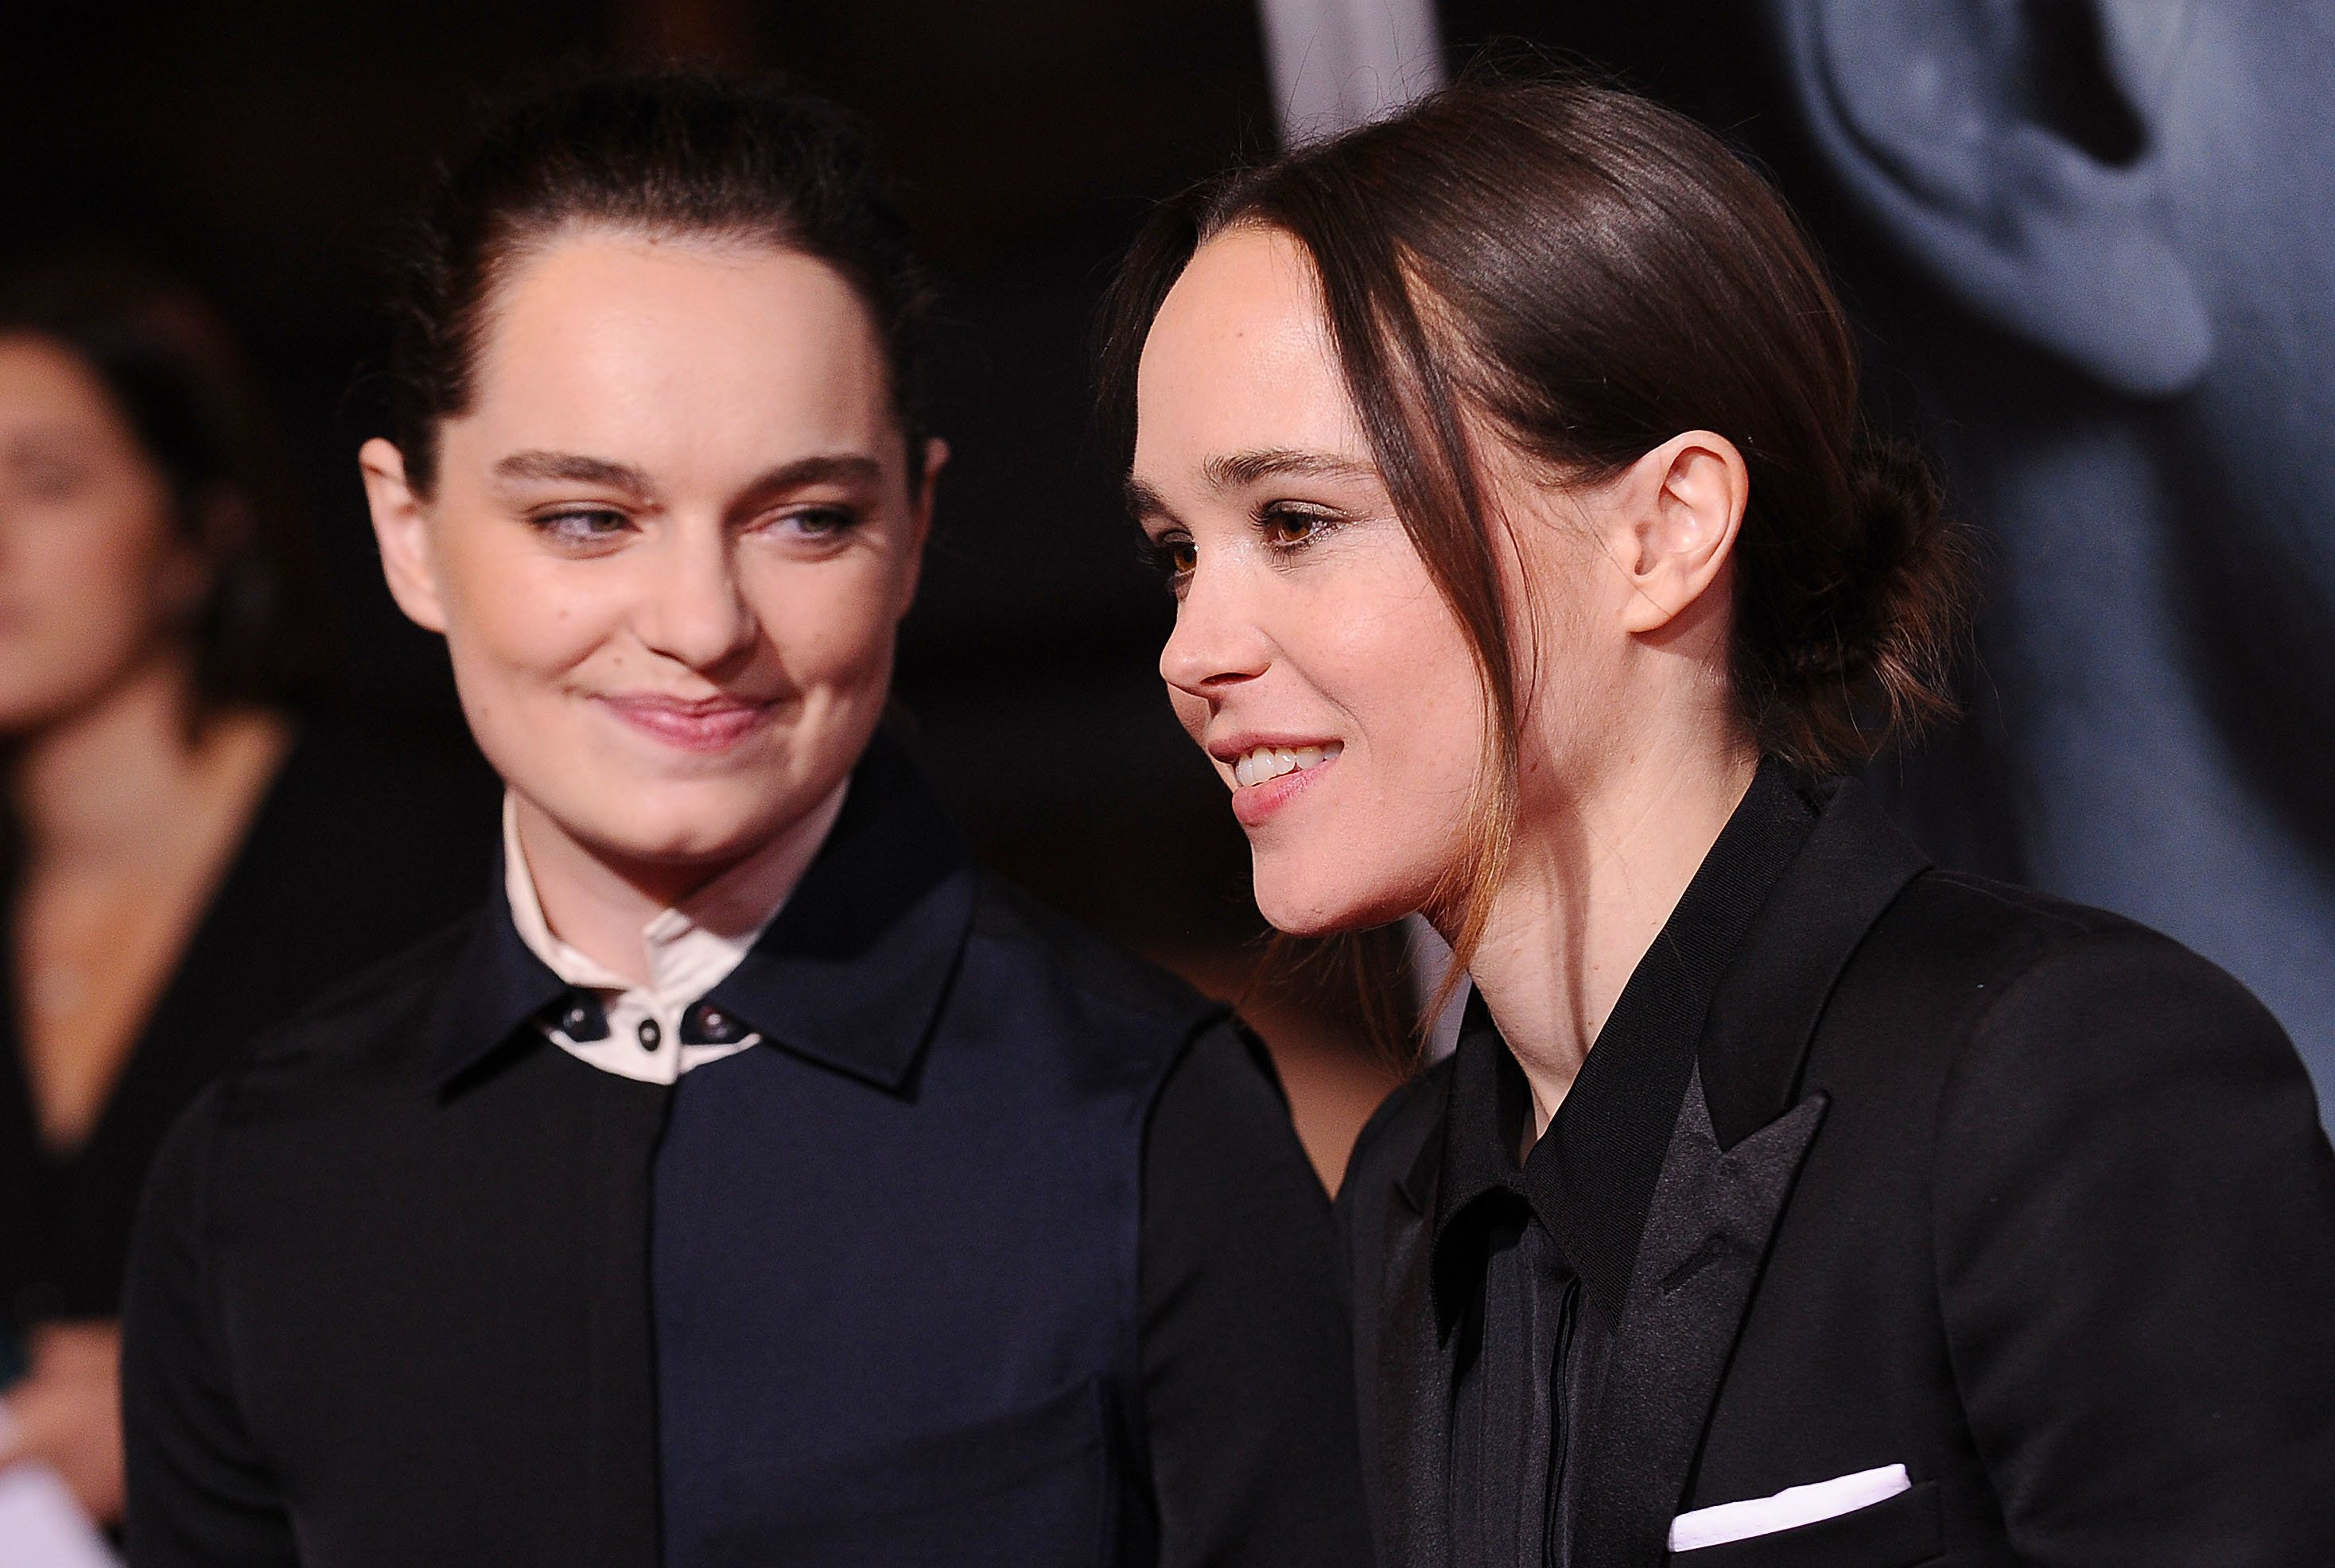 Ellen Page (right) and Emma Portner at a film premiere in Los Angeles last September.